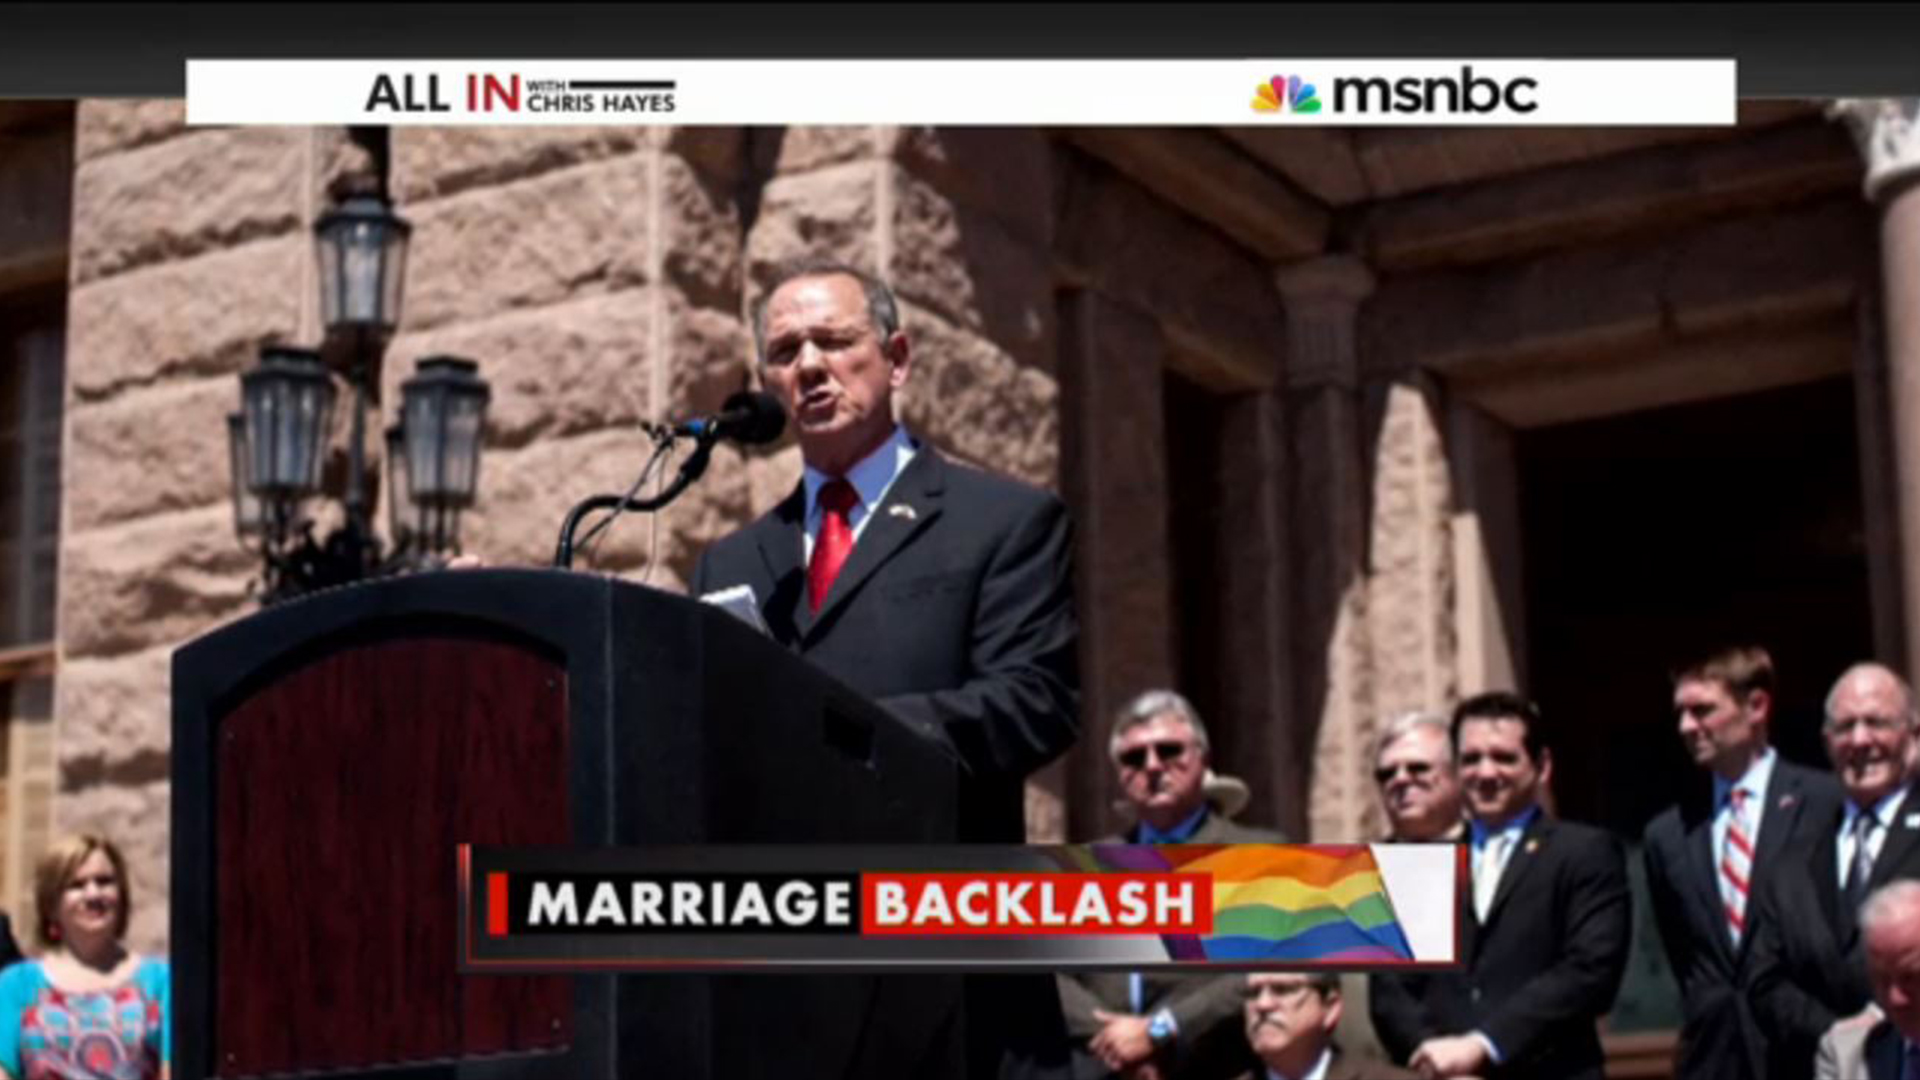 In South, defiance on same-sex marriage